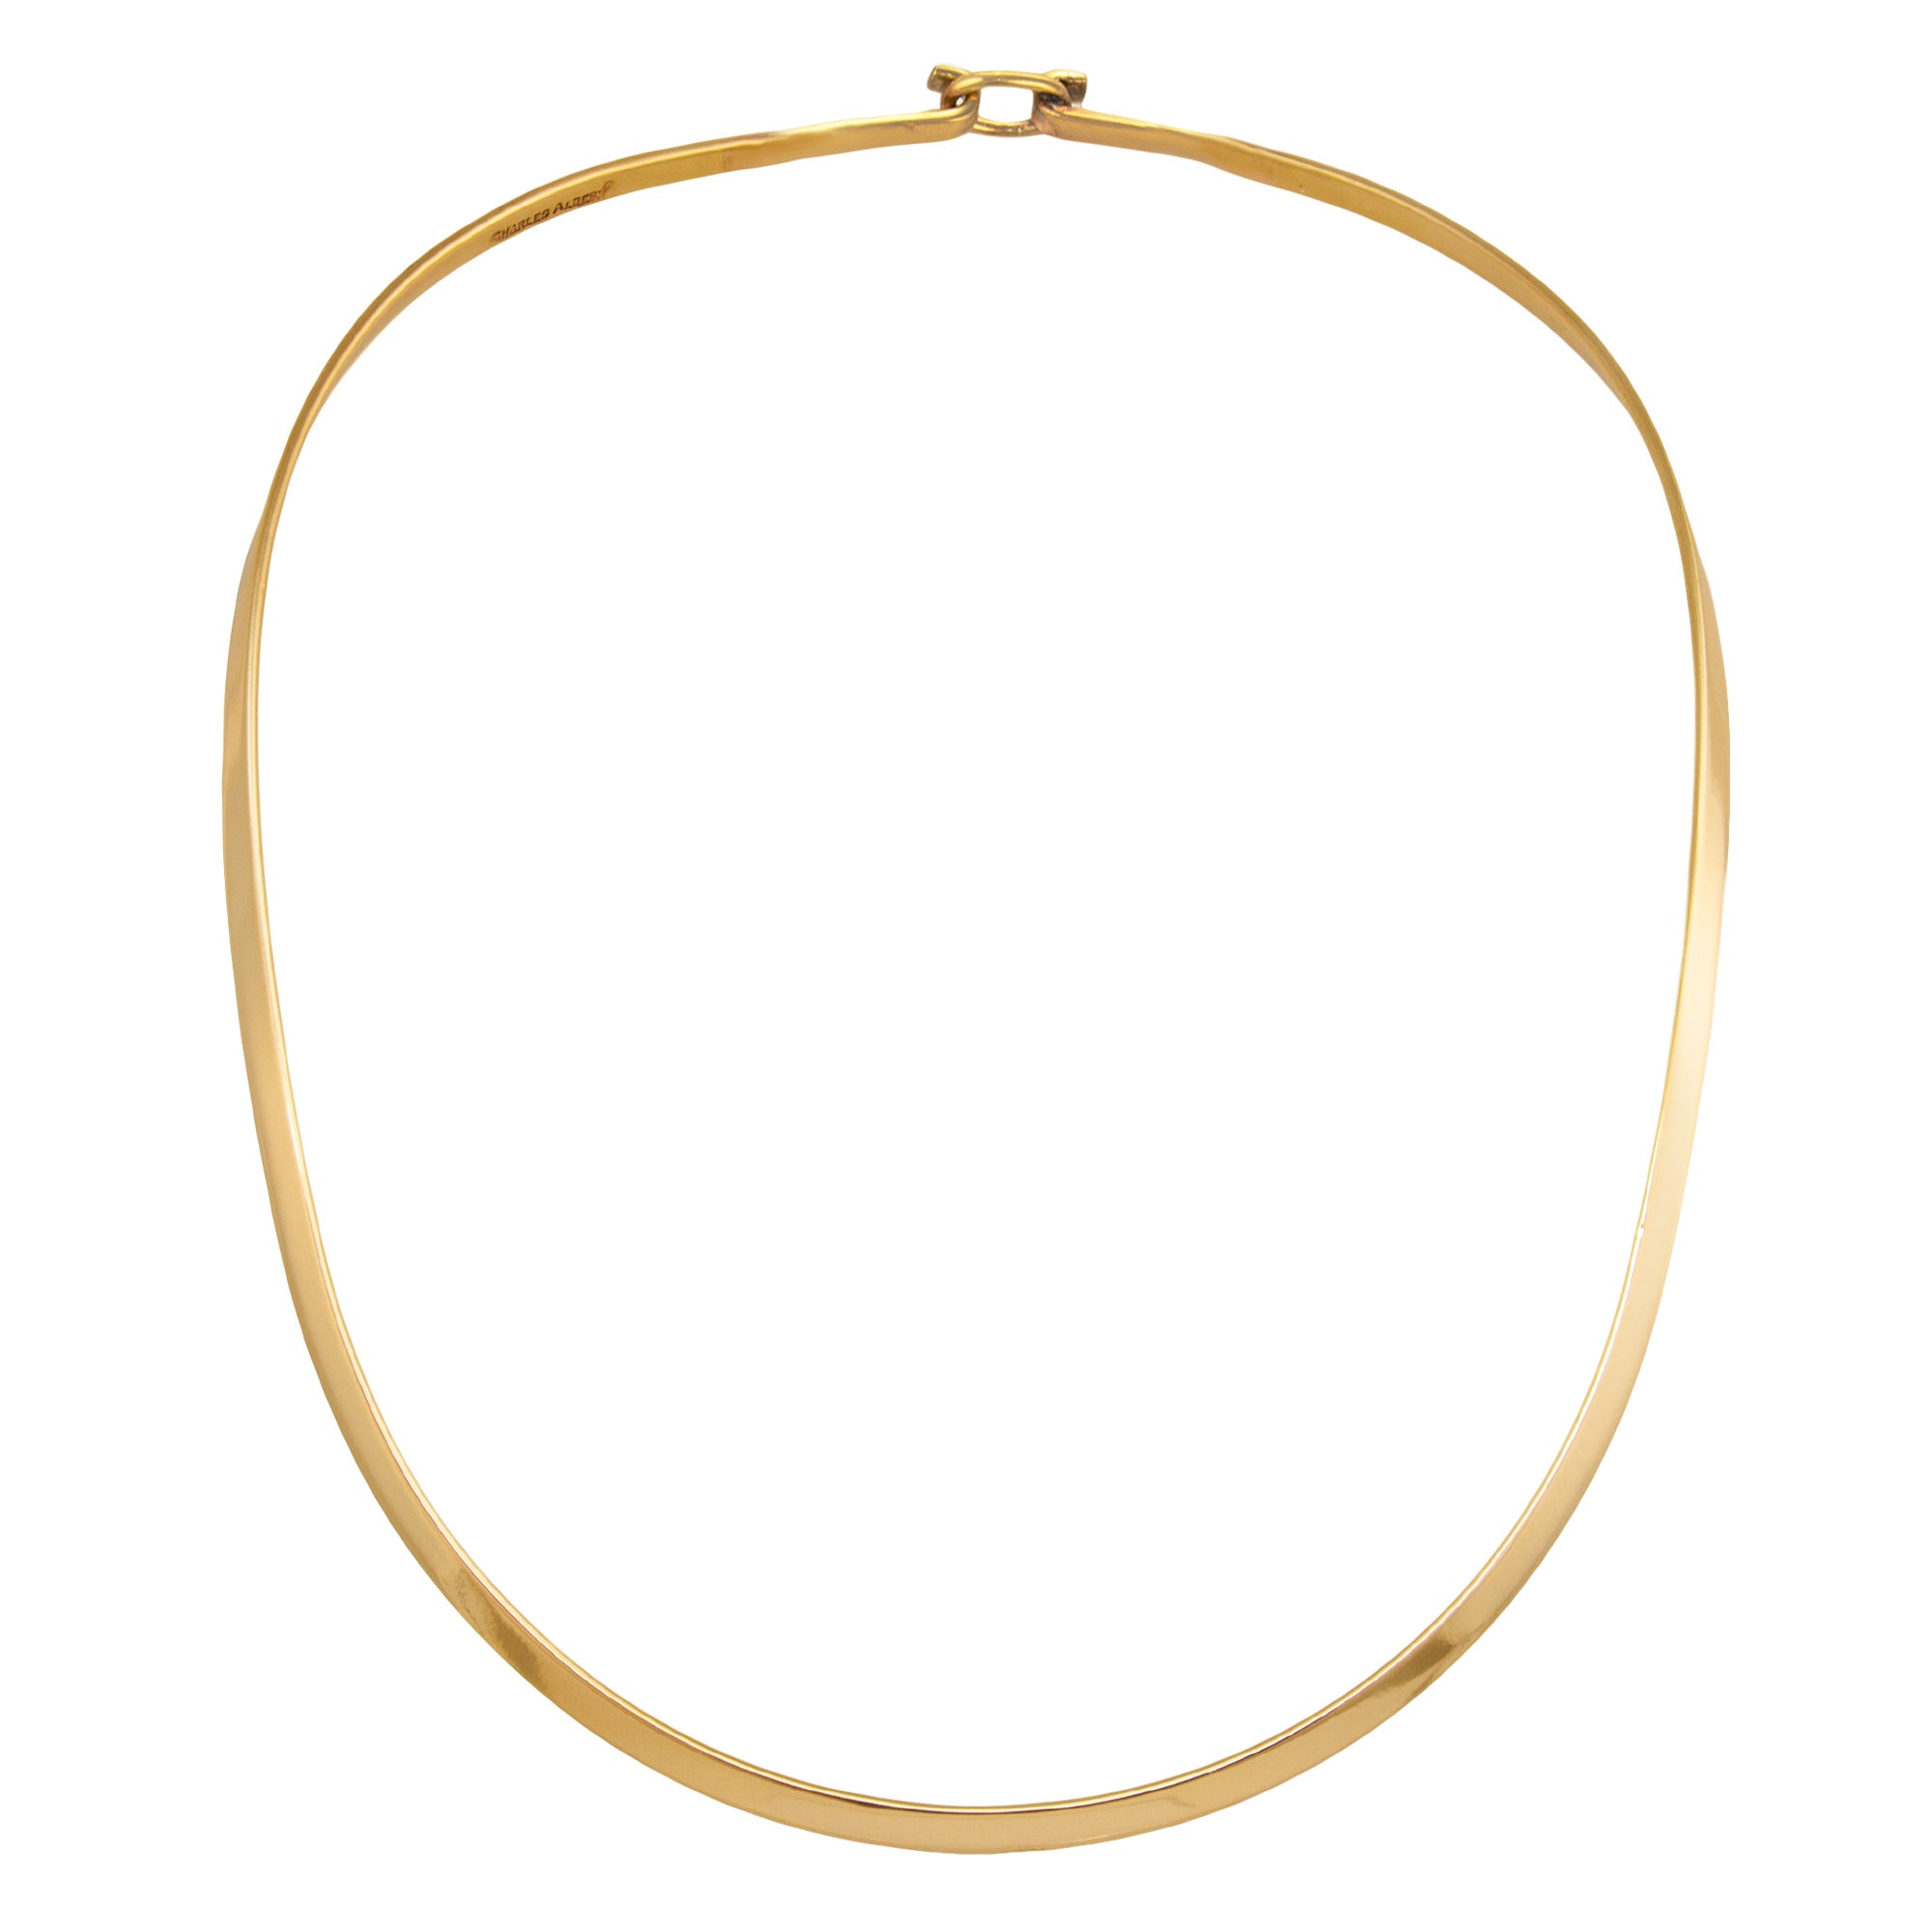 alchemia-oval-neckwire - 1 - Charles Albert Inc